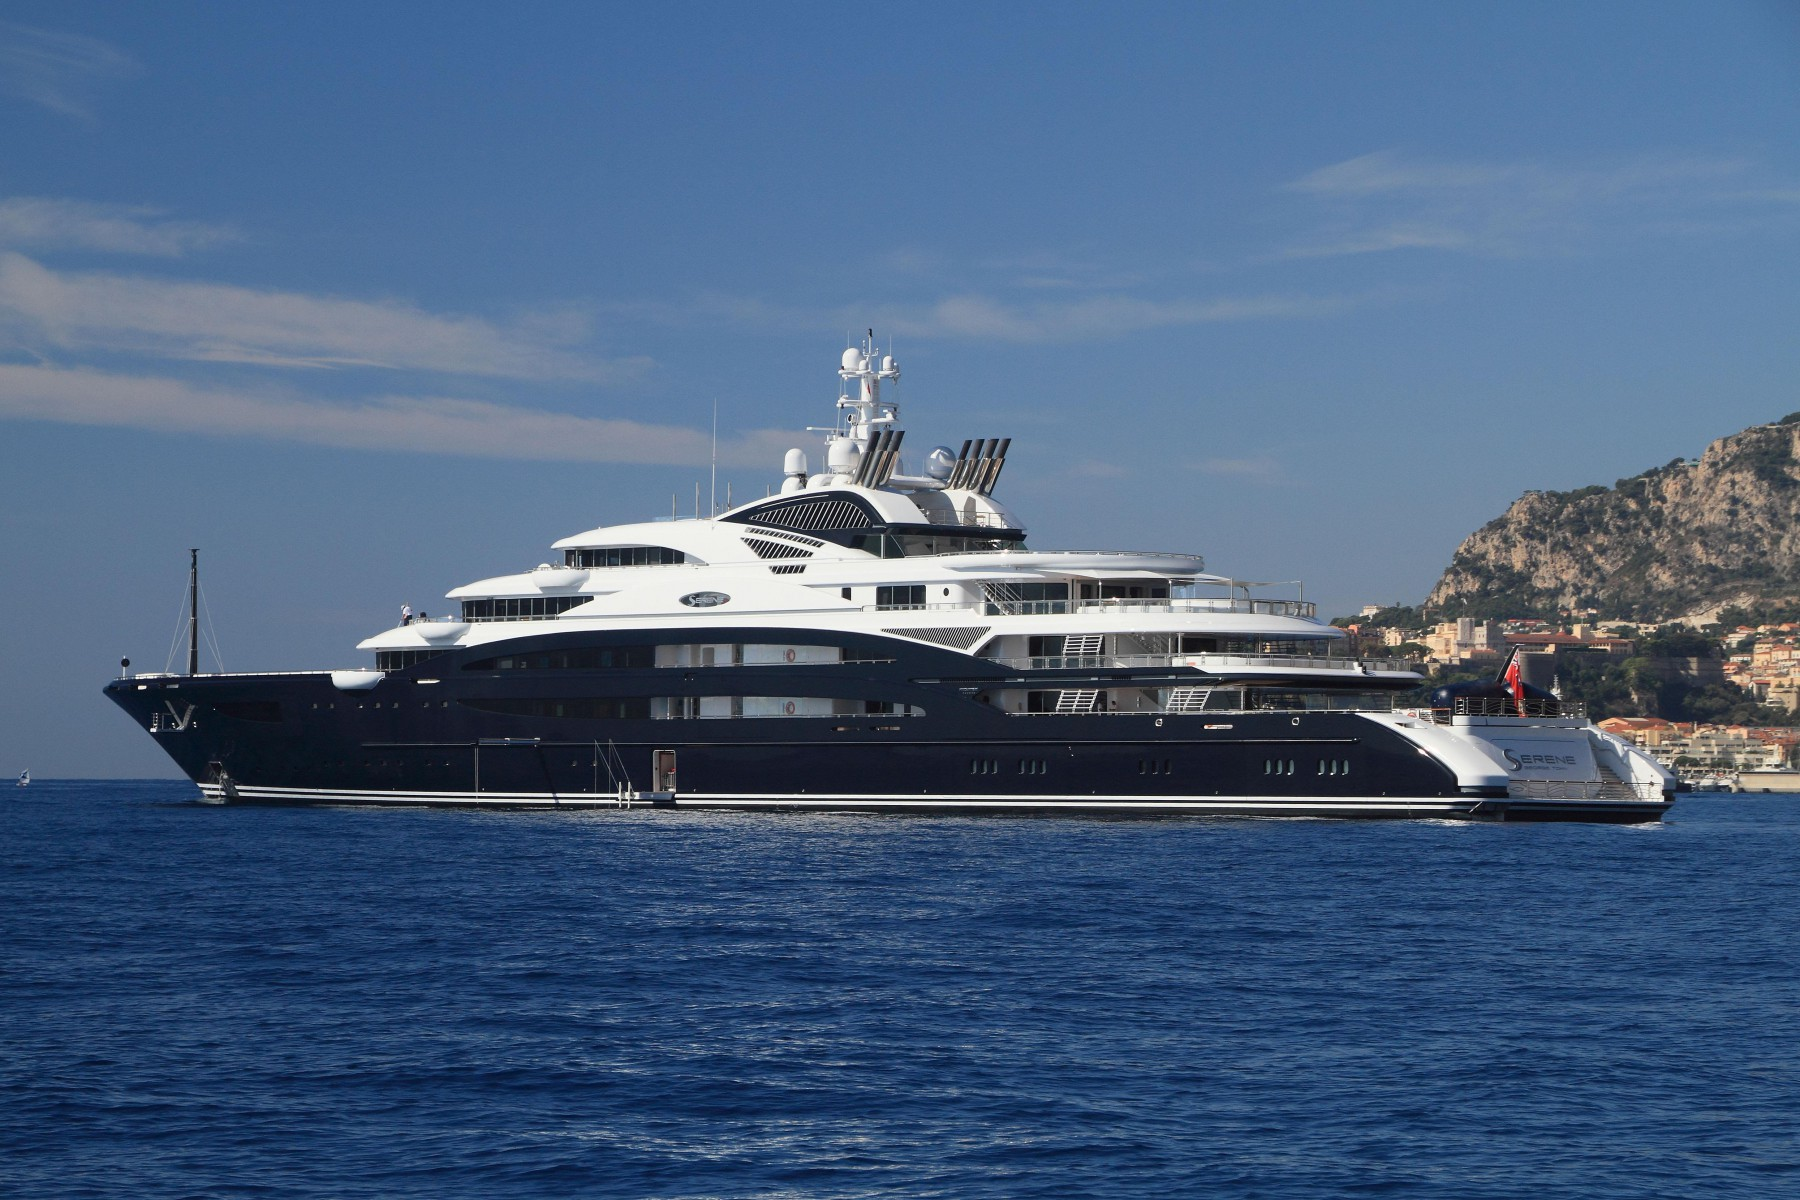 The Serene yacht owned by bin Salman is worth 380m